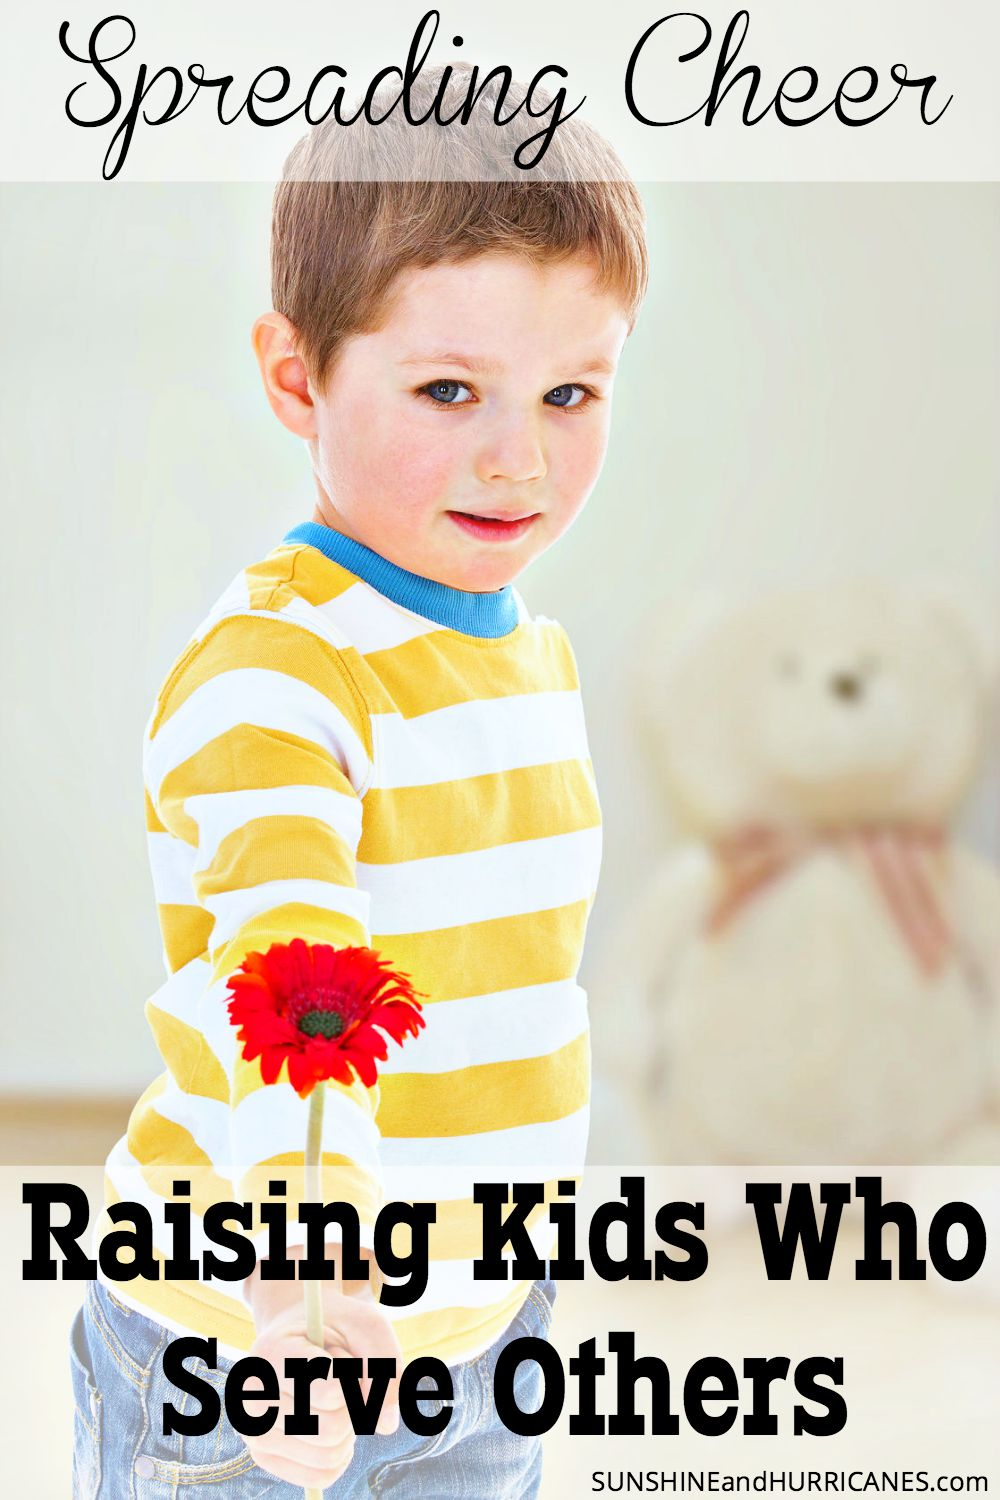 Do you want to raise children who are passionate about making the world a better place? Do you want them to have a heart for helping others? There are many ways we can instill these values in our children that can even be fun. Learn about Raising Kids Who Serve Others; Spreading Cheer. SunshineandHurricanes.com